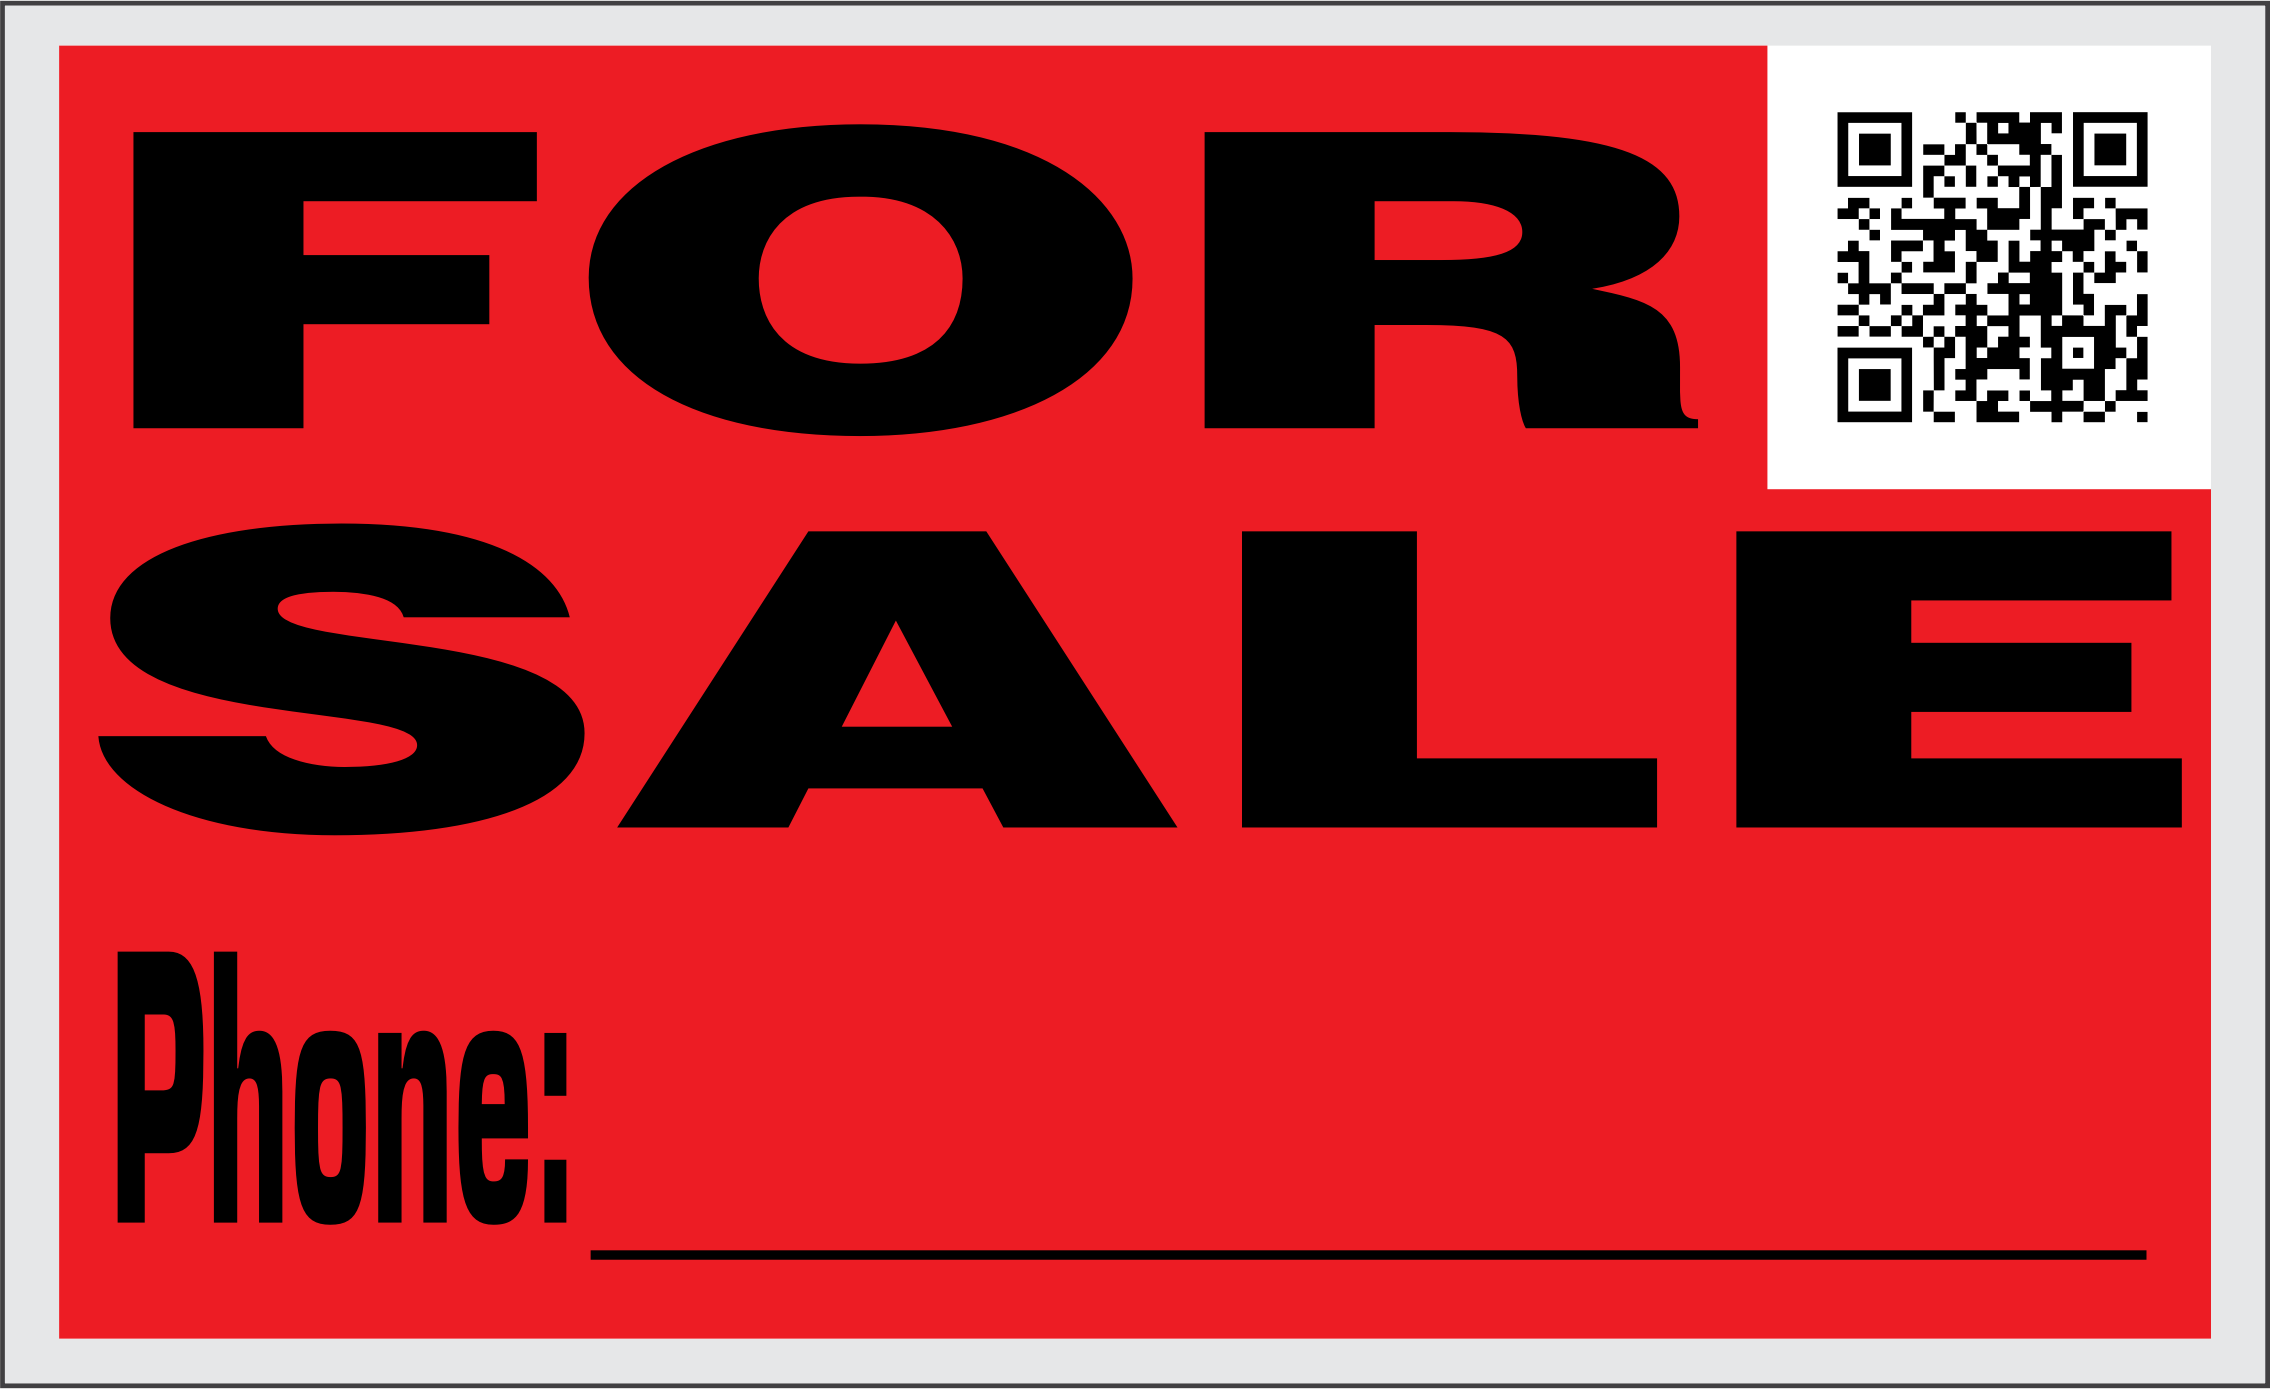 on sale sign